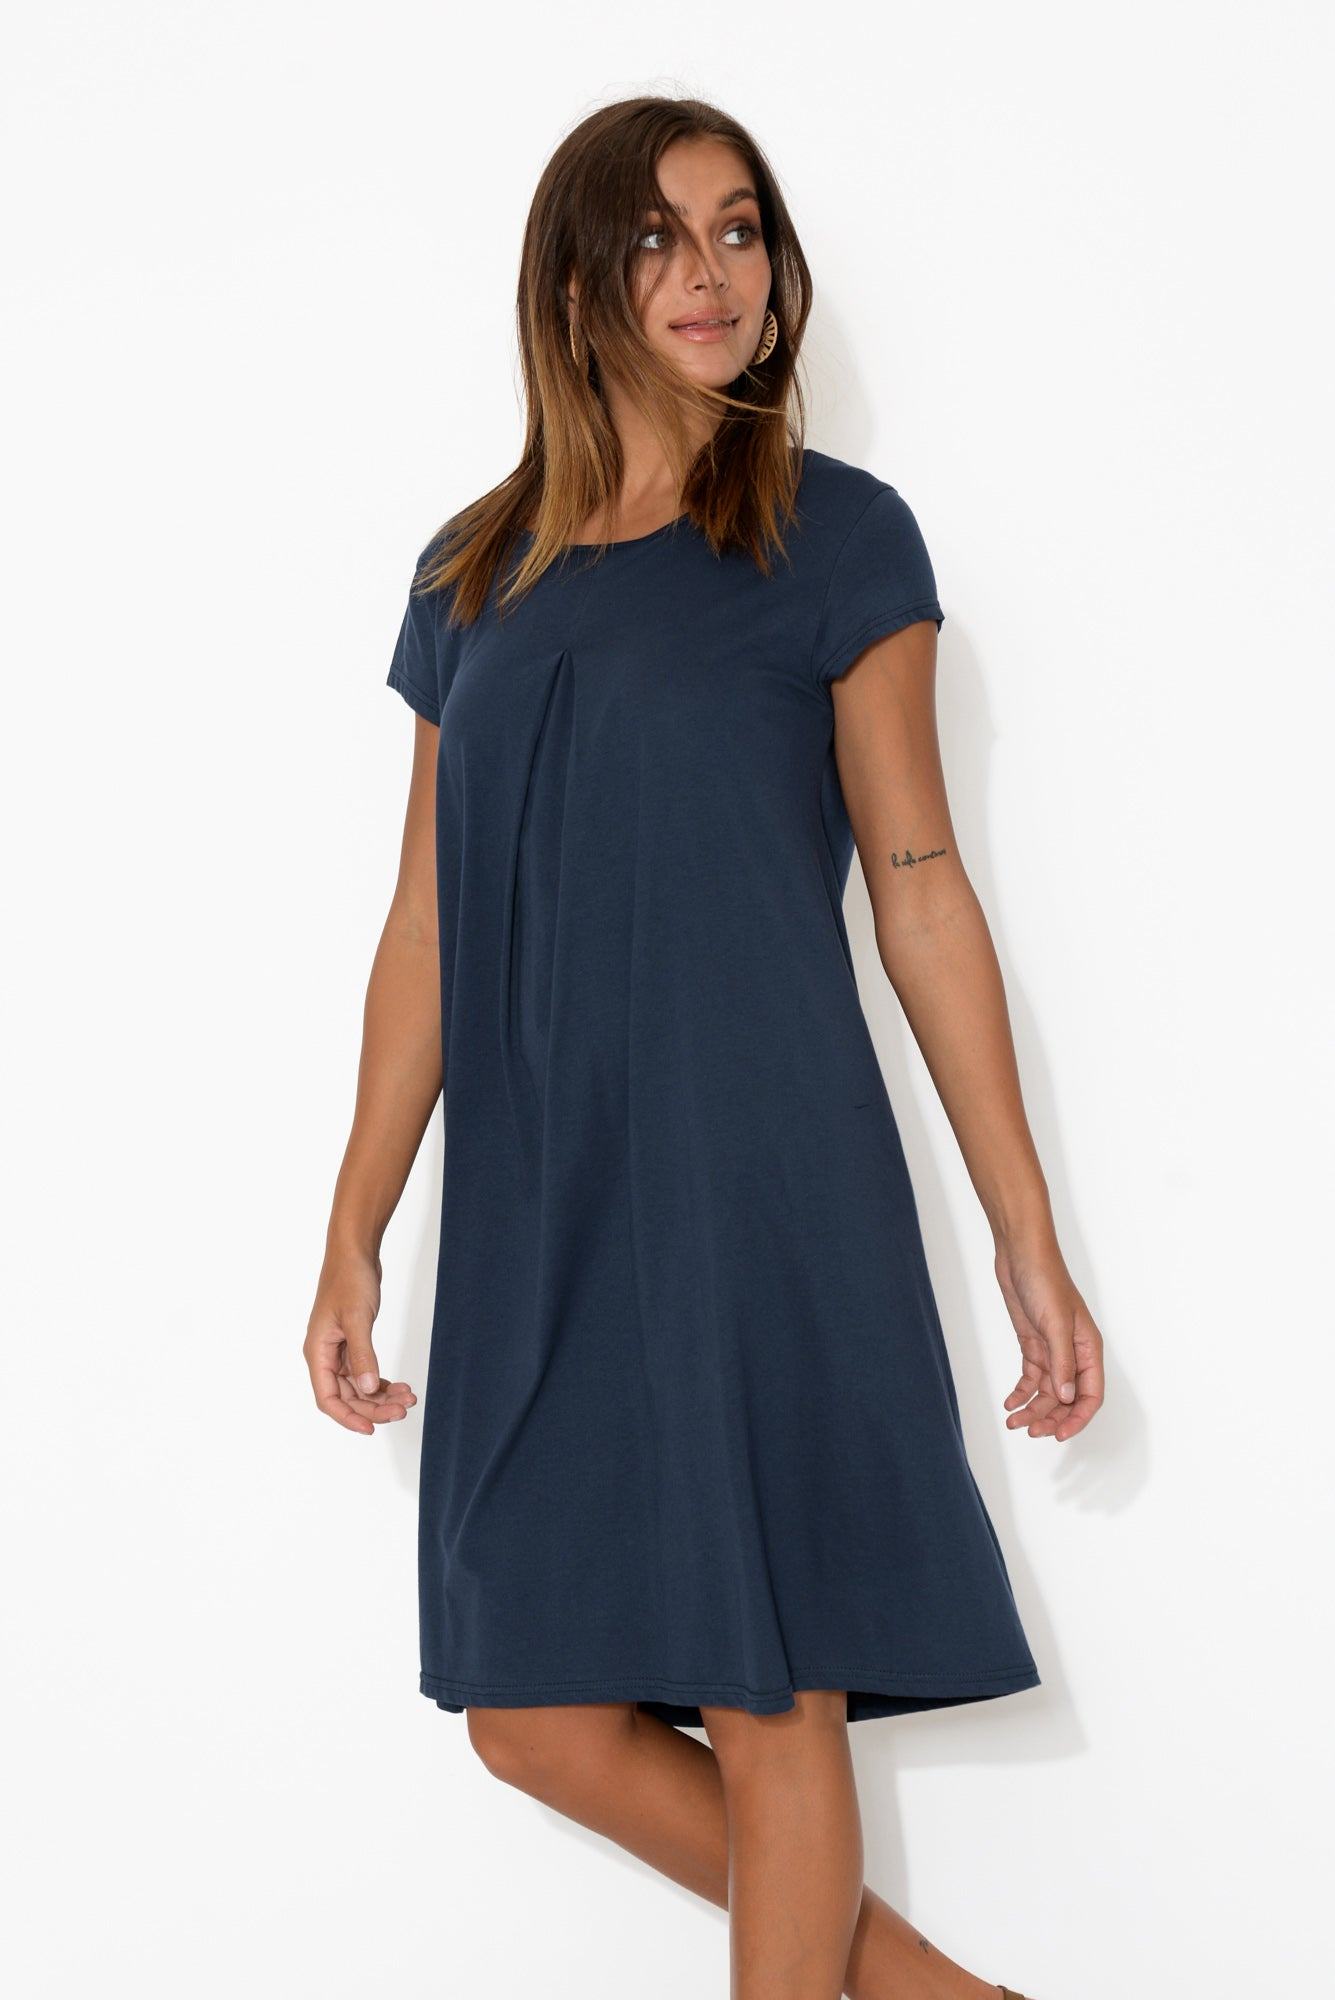 Allende Navy Cotton Swing Dress